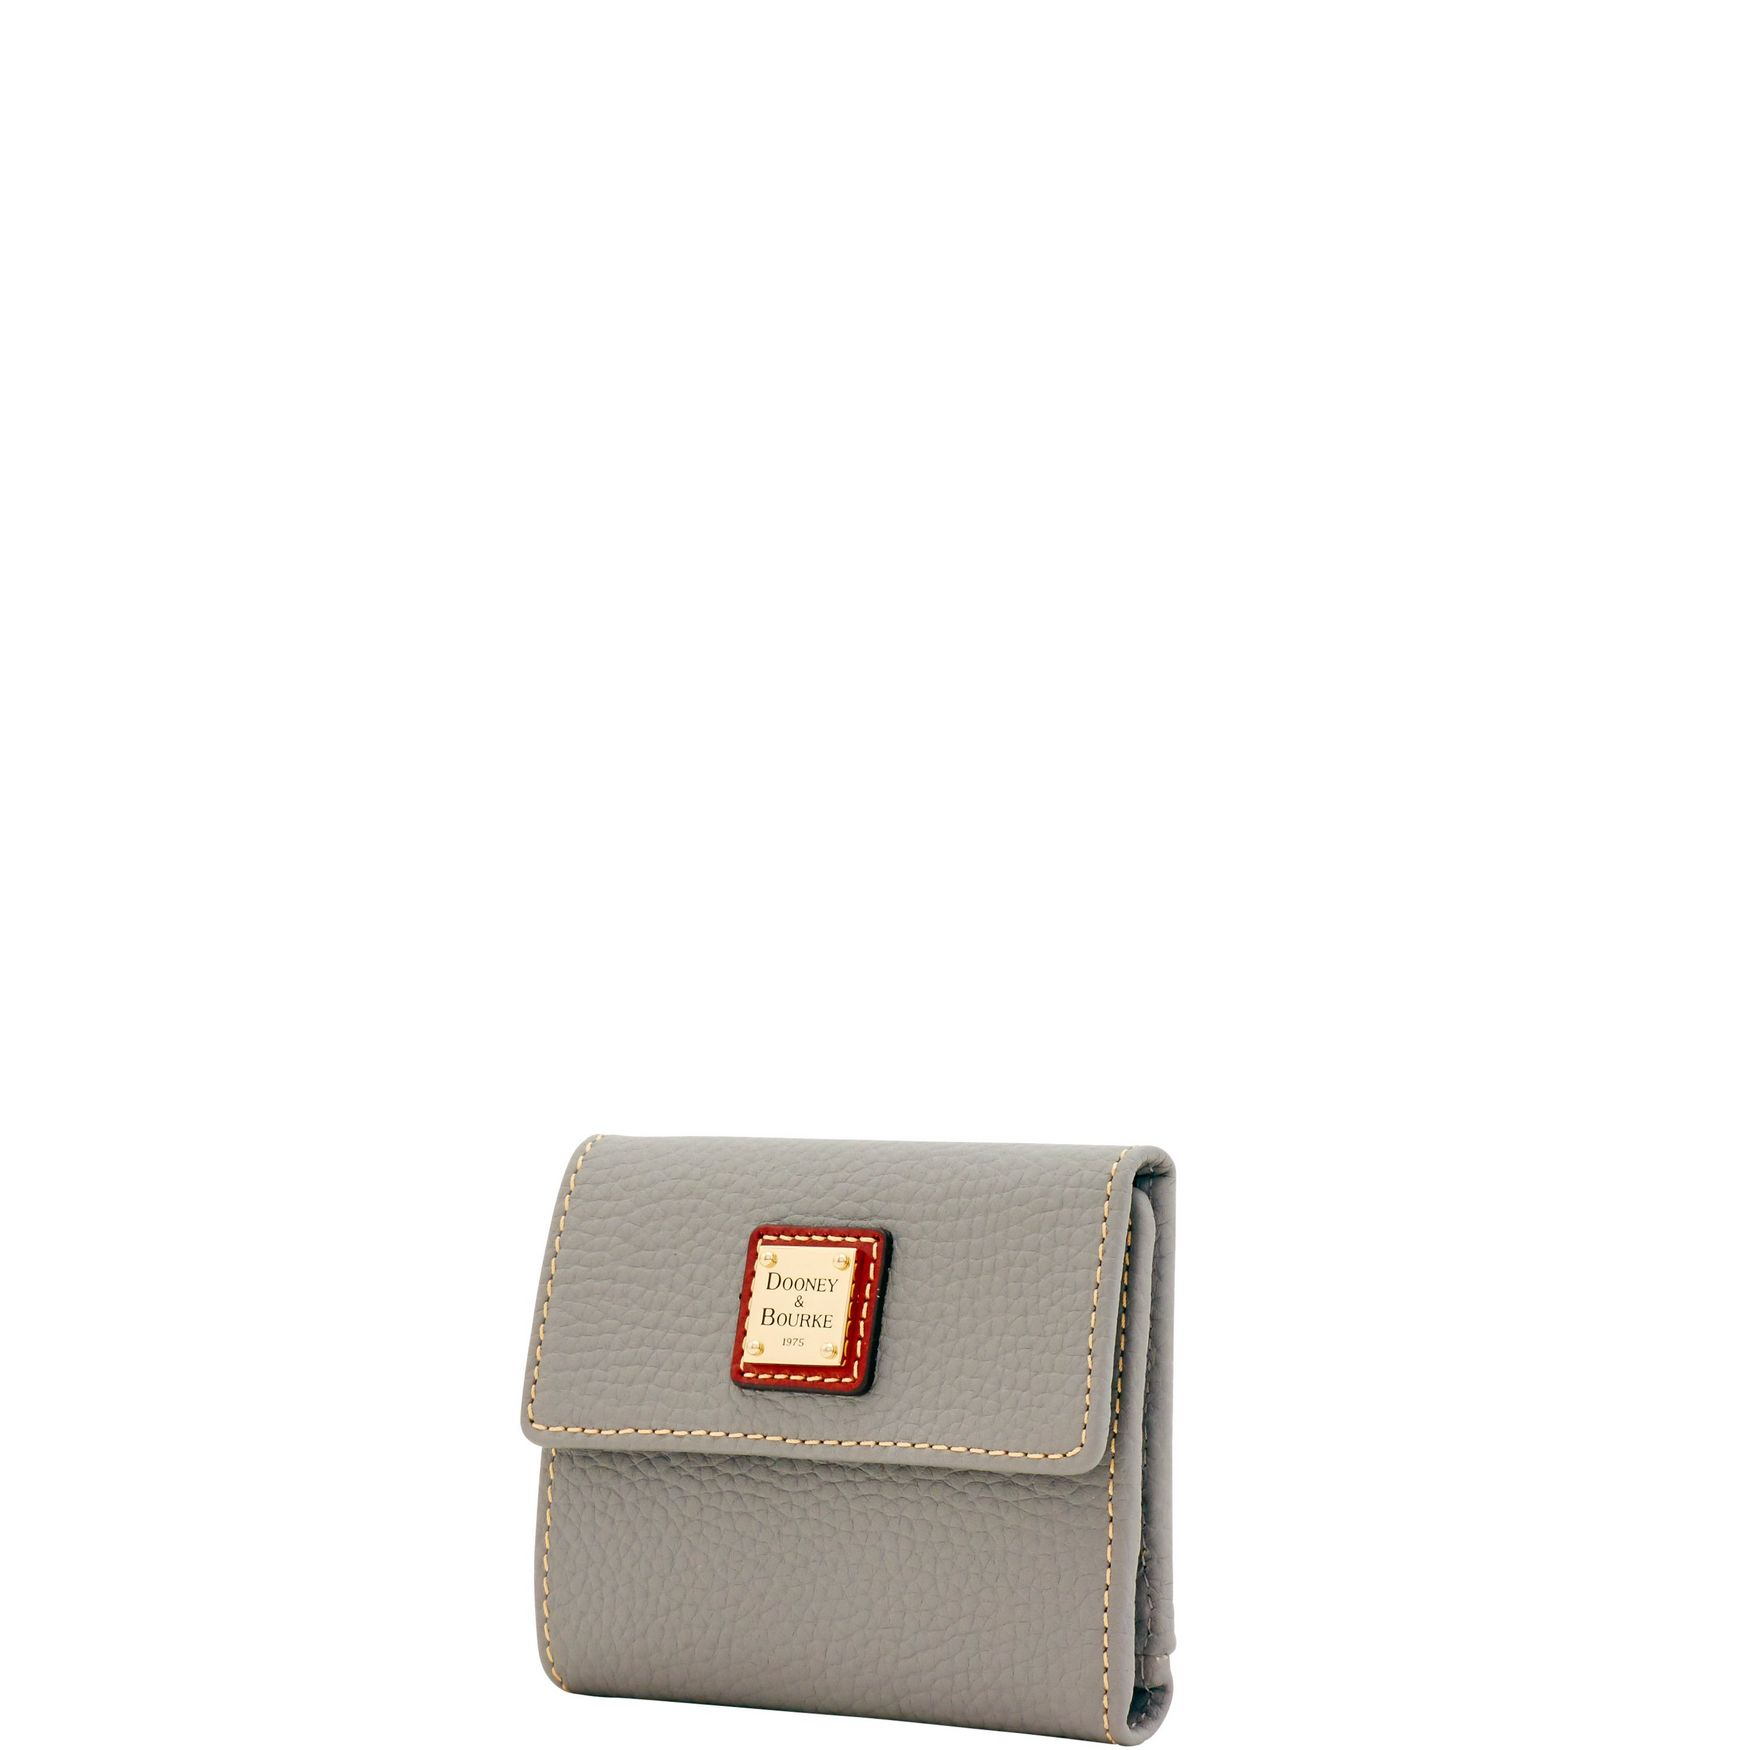 Dooney-amp-Bourke-Pebble-Grain-Small-Flap-Wallet thumbnail 80